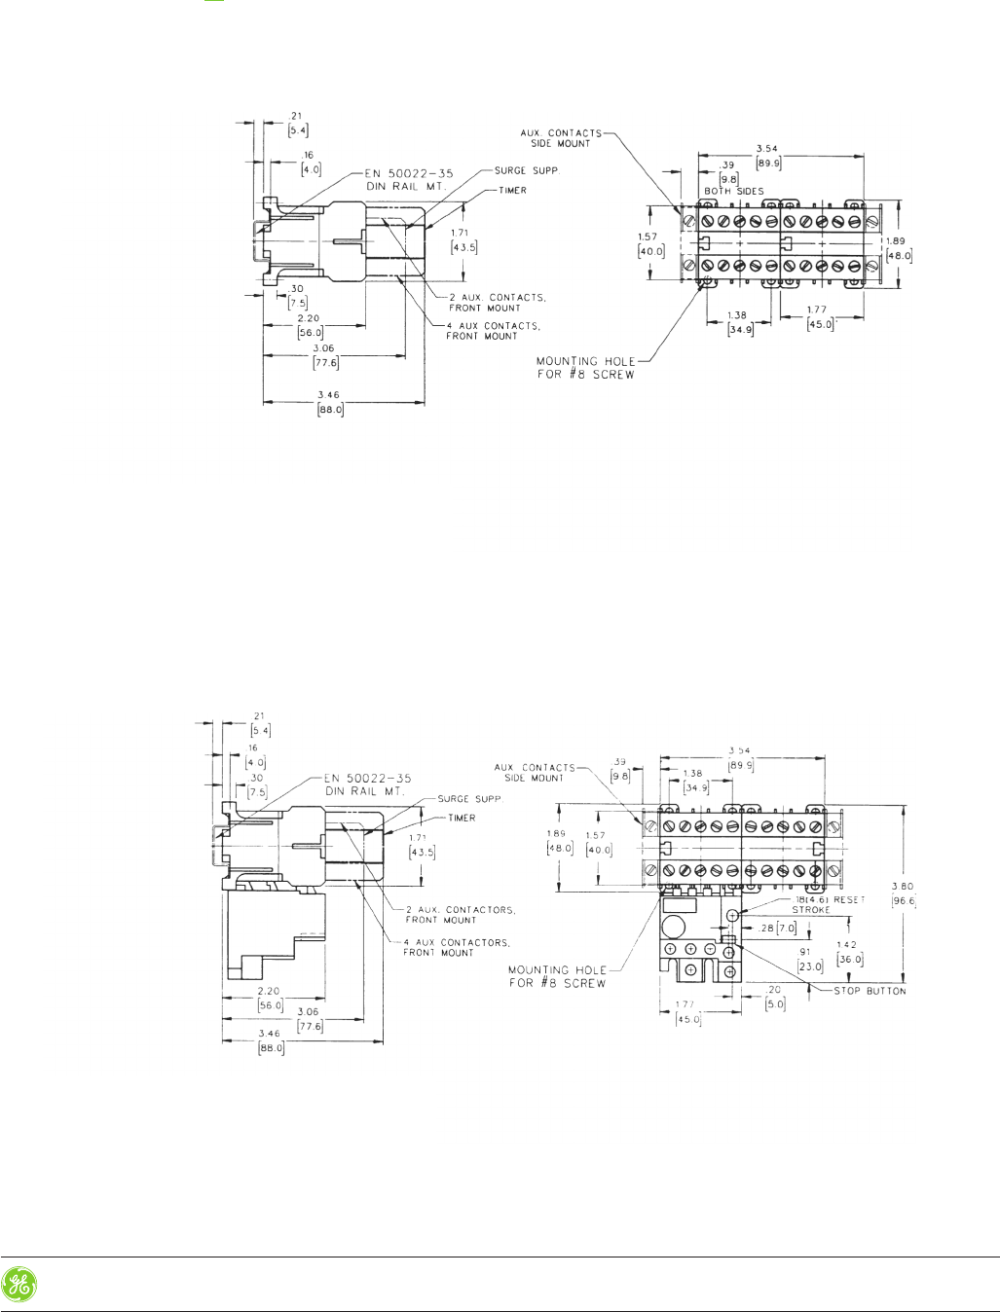 medium resolution of cl01a310t contactor wiring diagram wiring diagrams reverse polarity relay diagram cl01a310t contactor wiring diagram